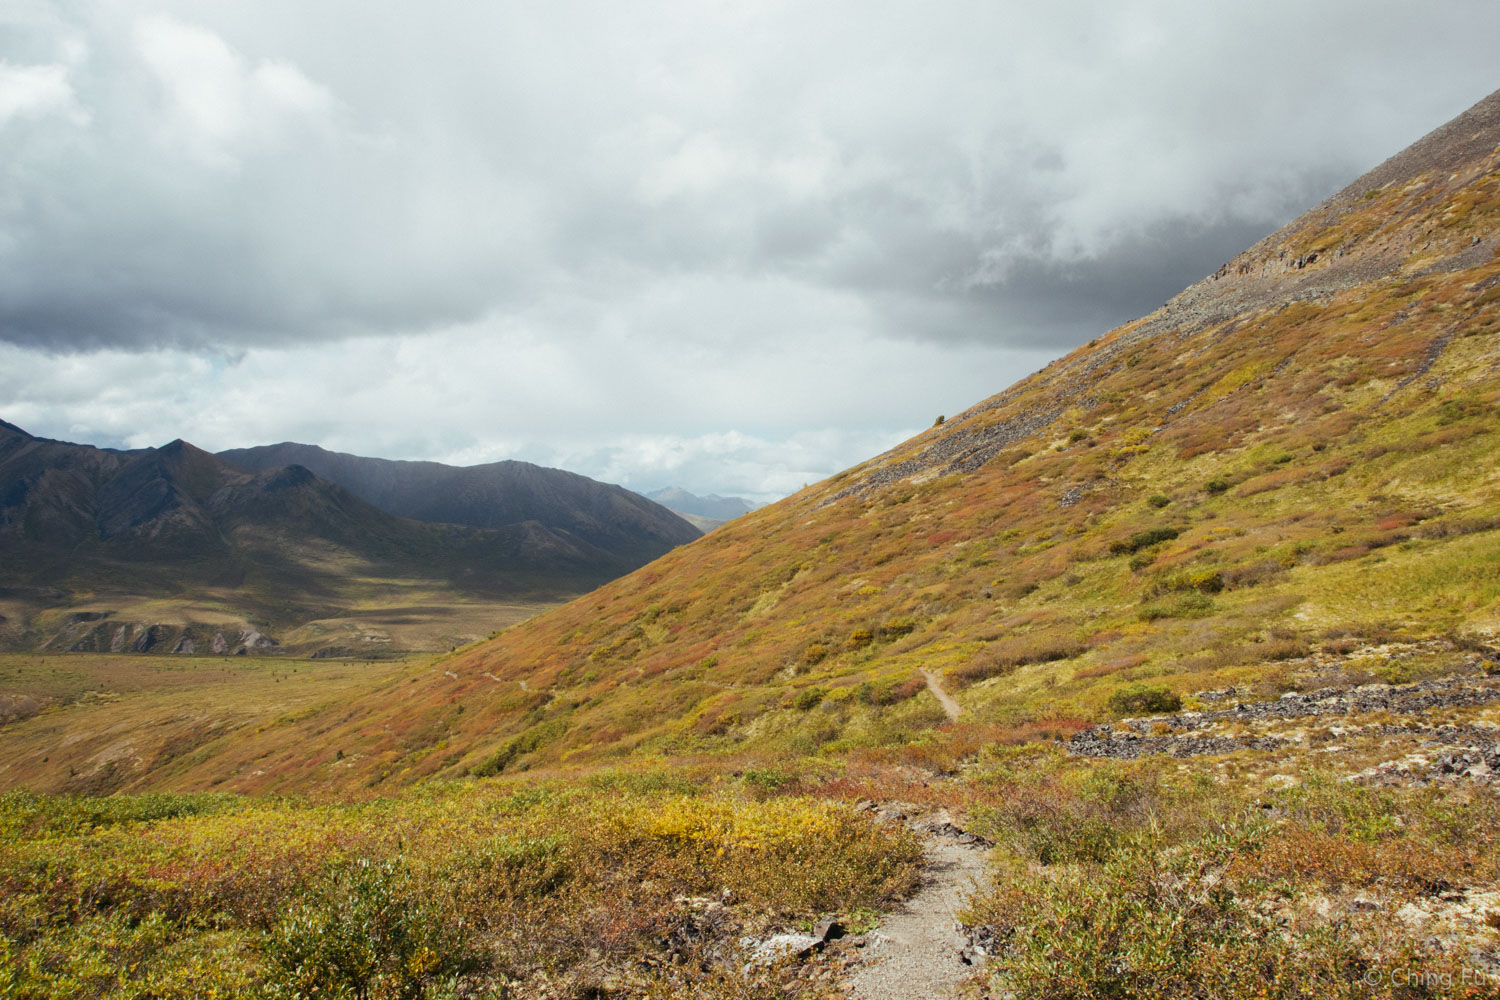 Goldensides Mountain in Tombstone Territorial Park.